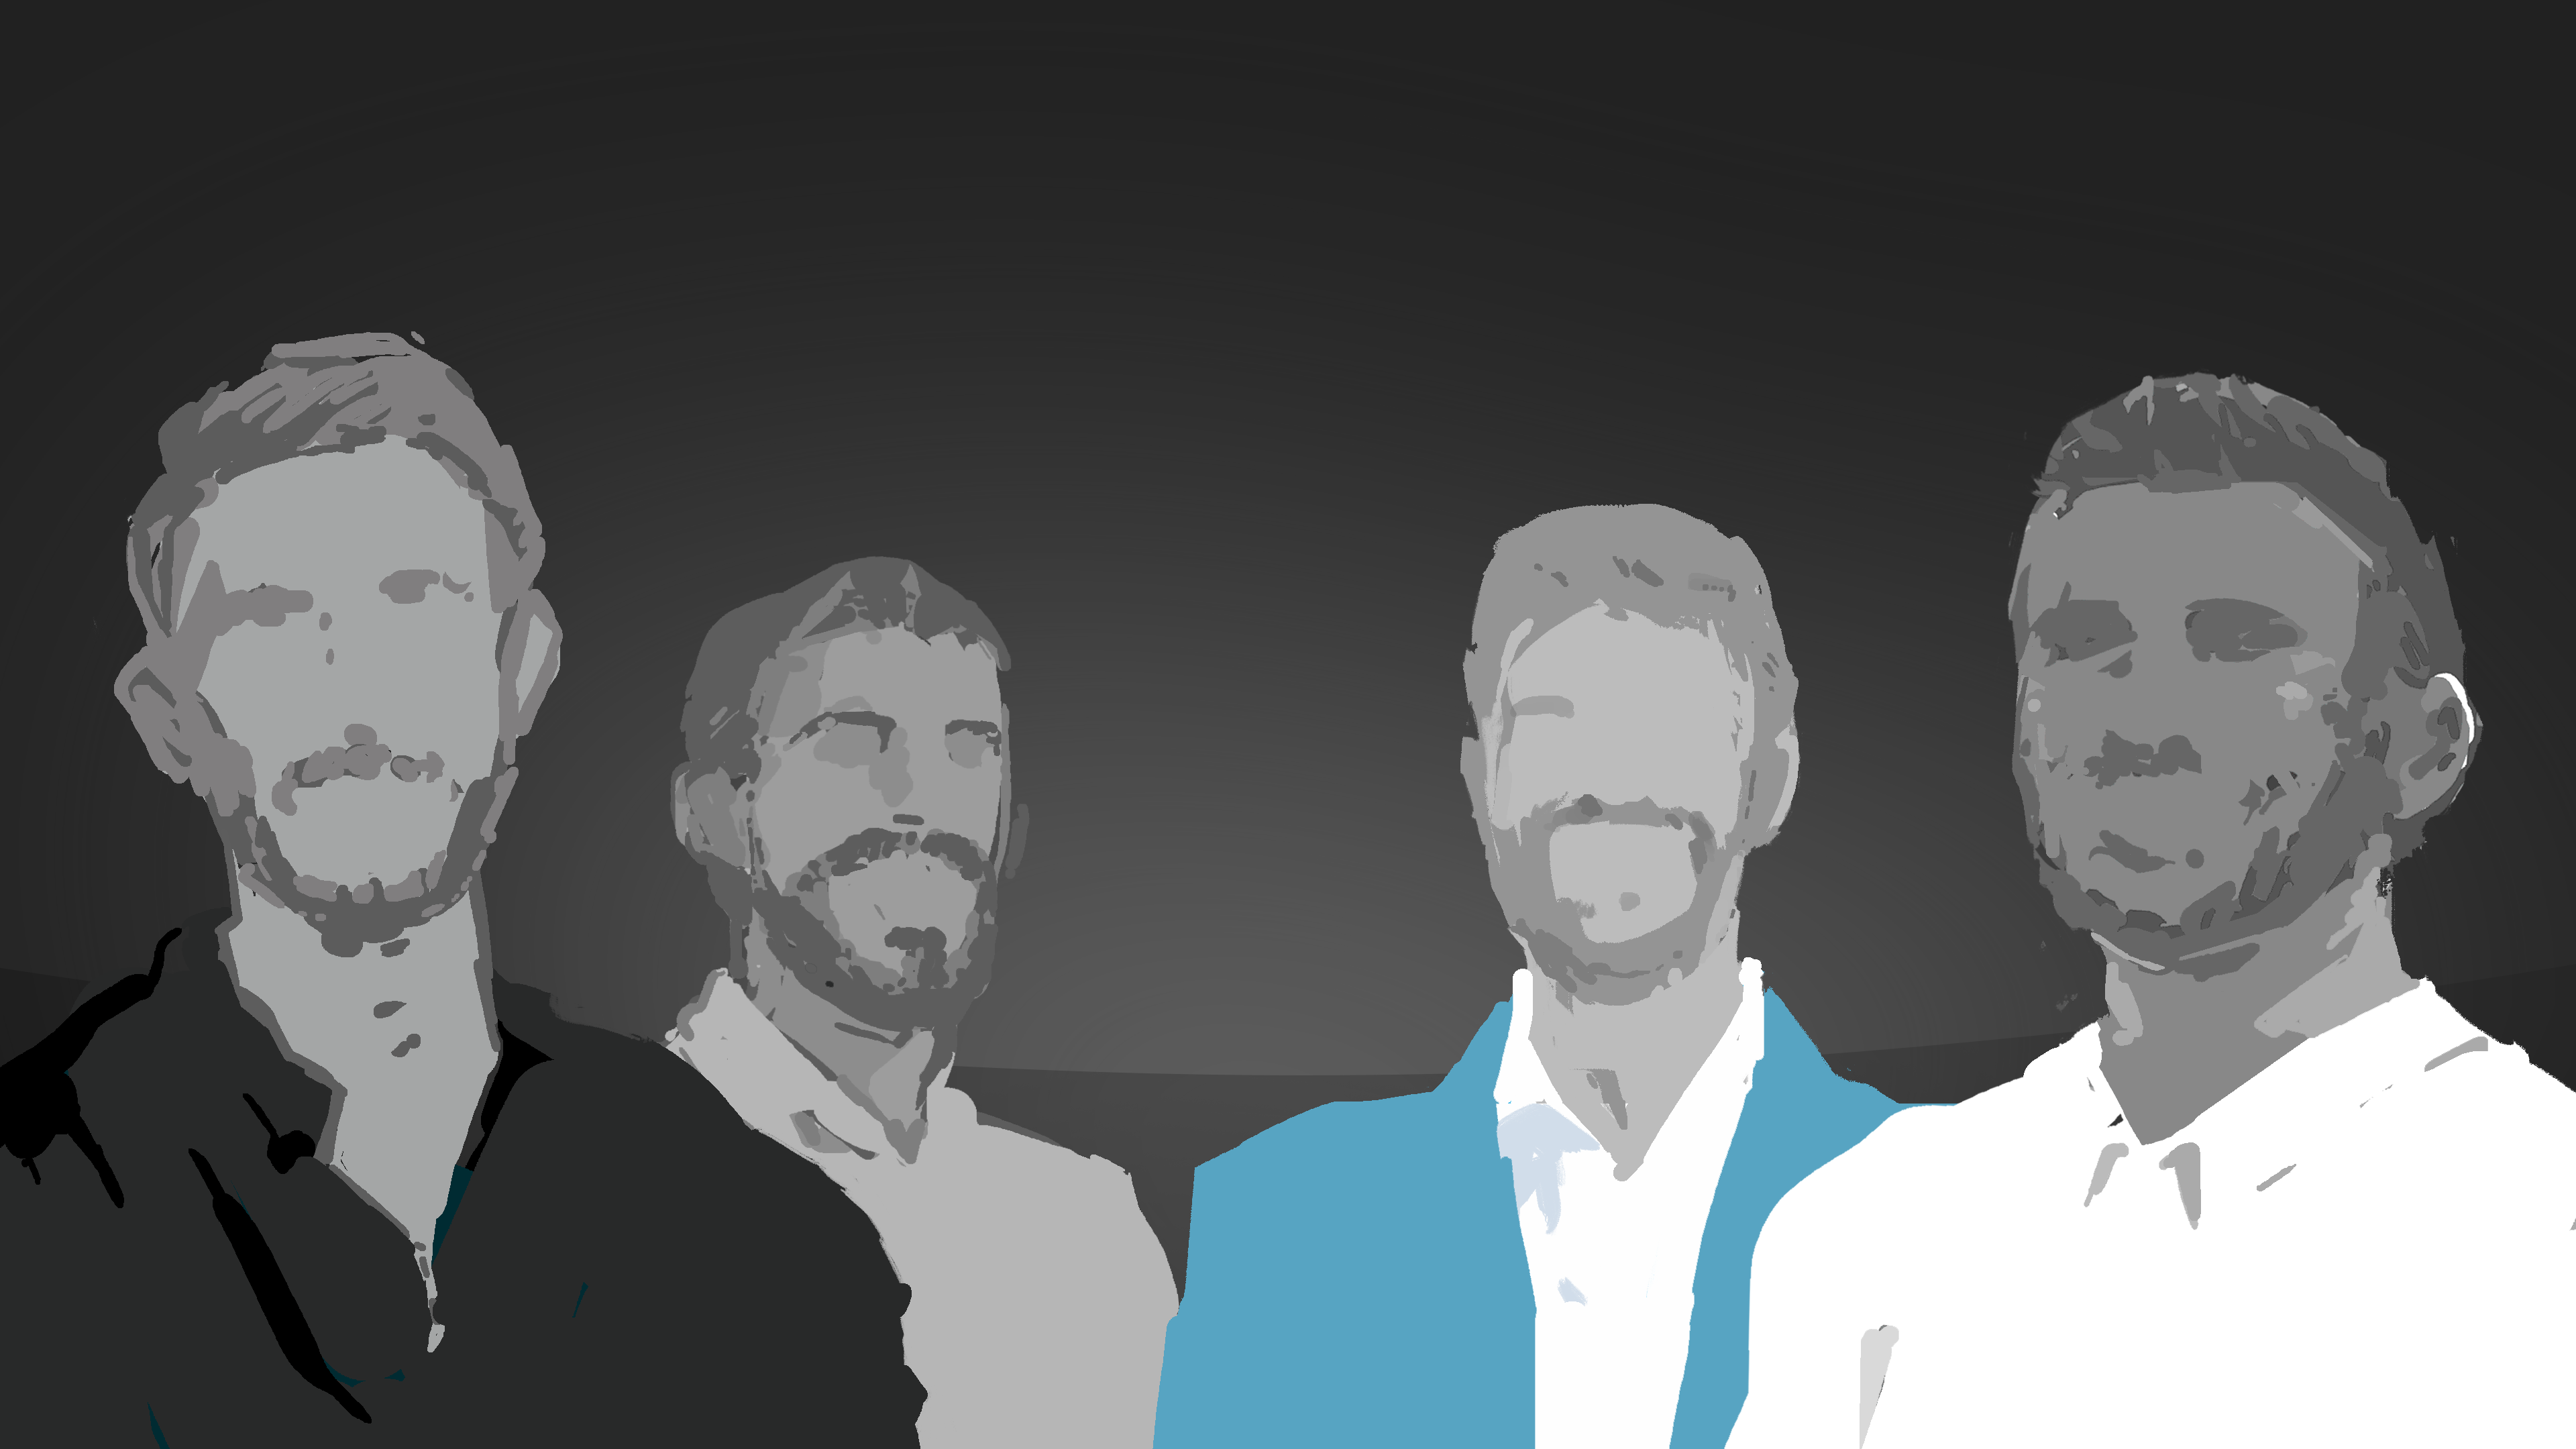 Textured silhouette image of four co-founders in grey and blue tones